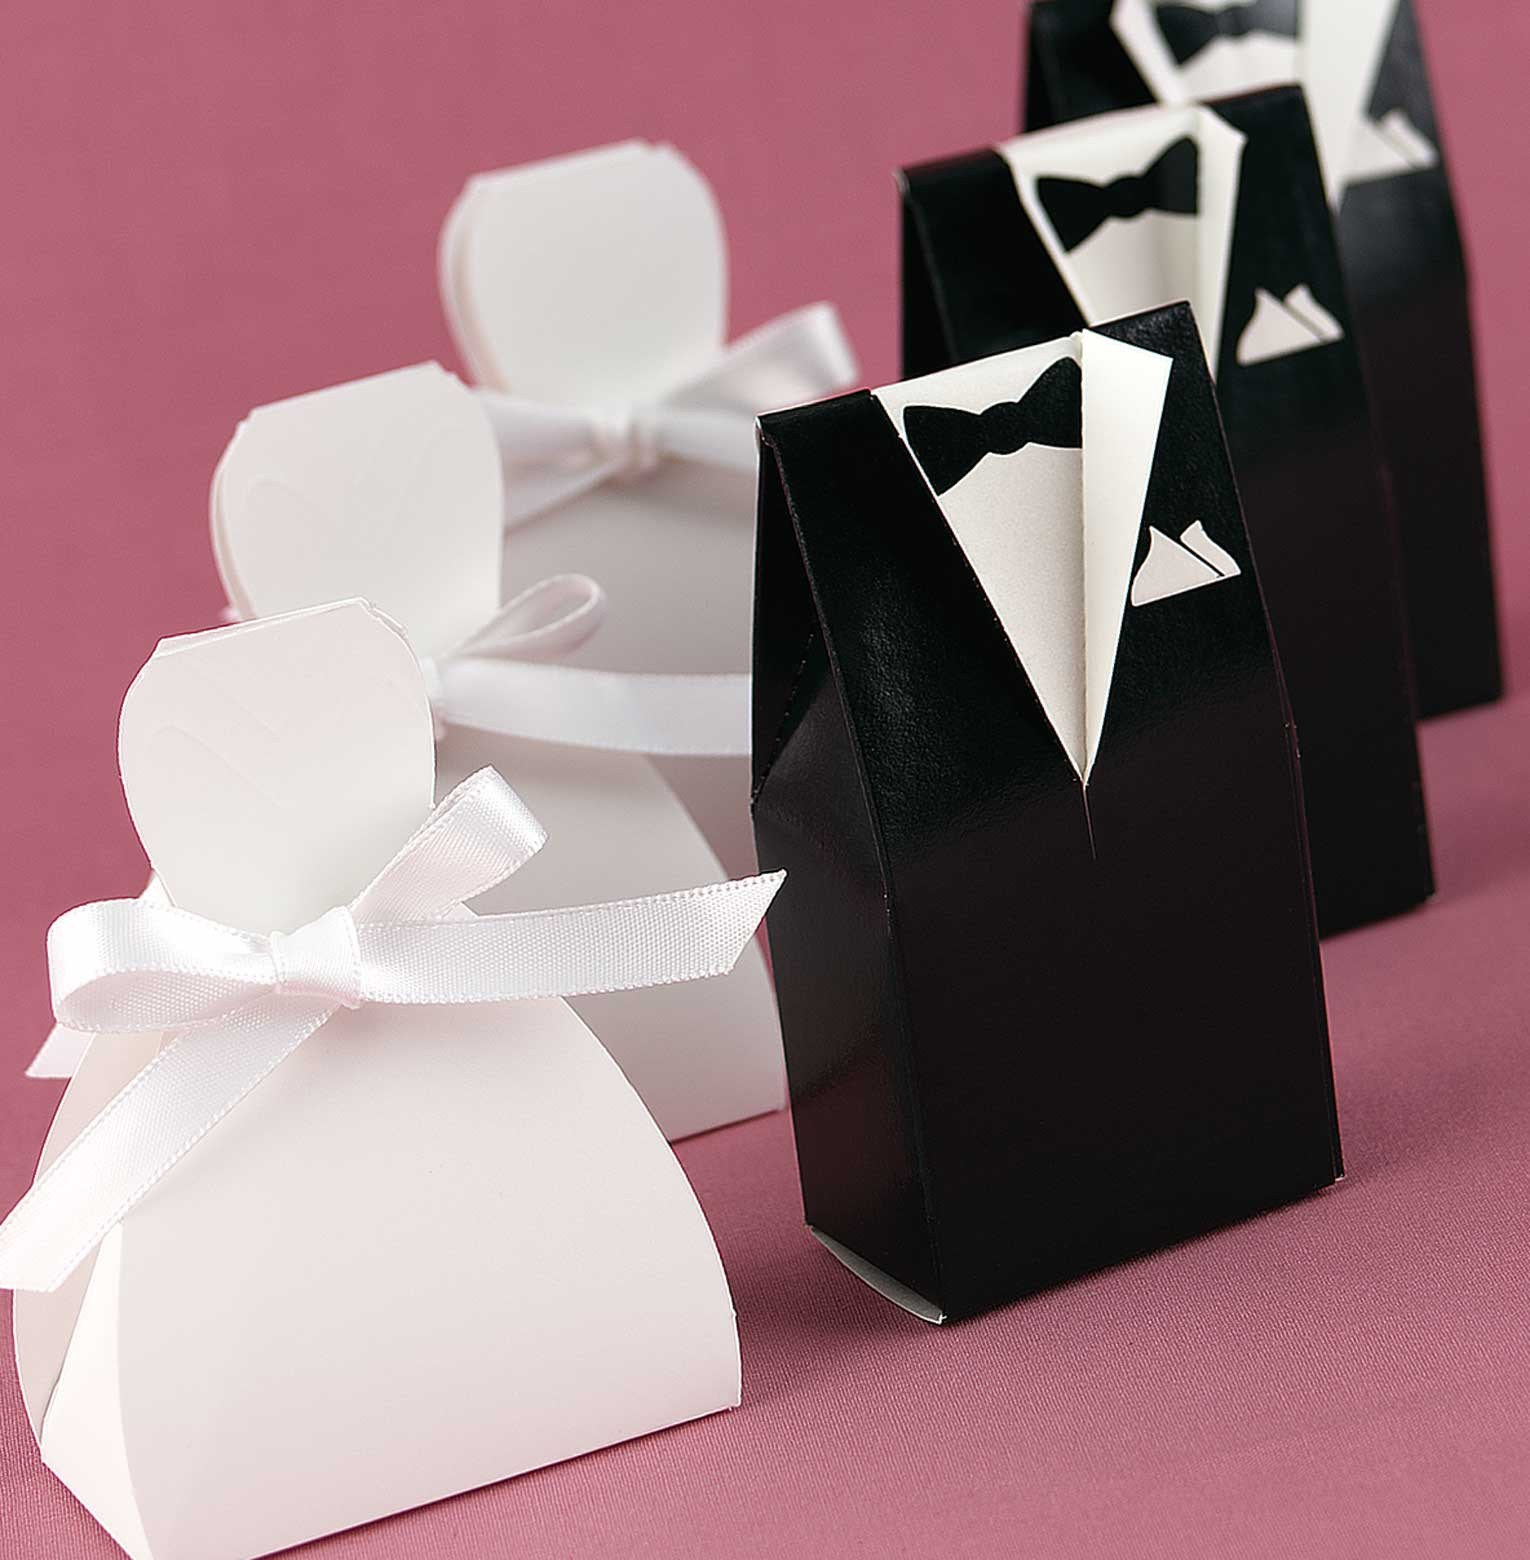 Wedding Gift Box Suggestions : ... Wedding favors and gift ideas - quality favors and gifts for the